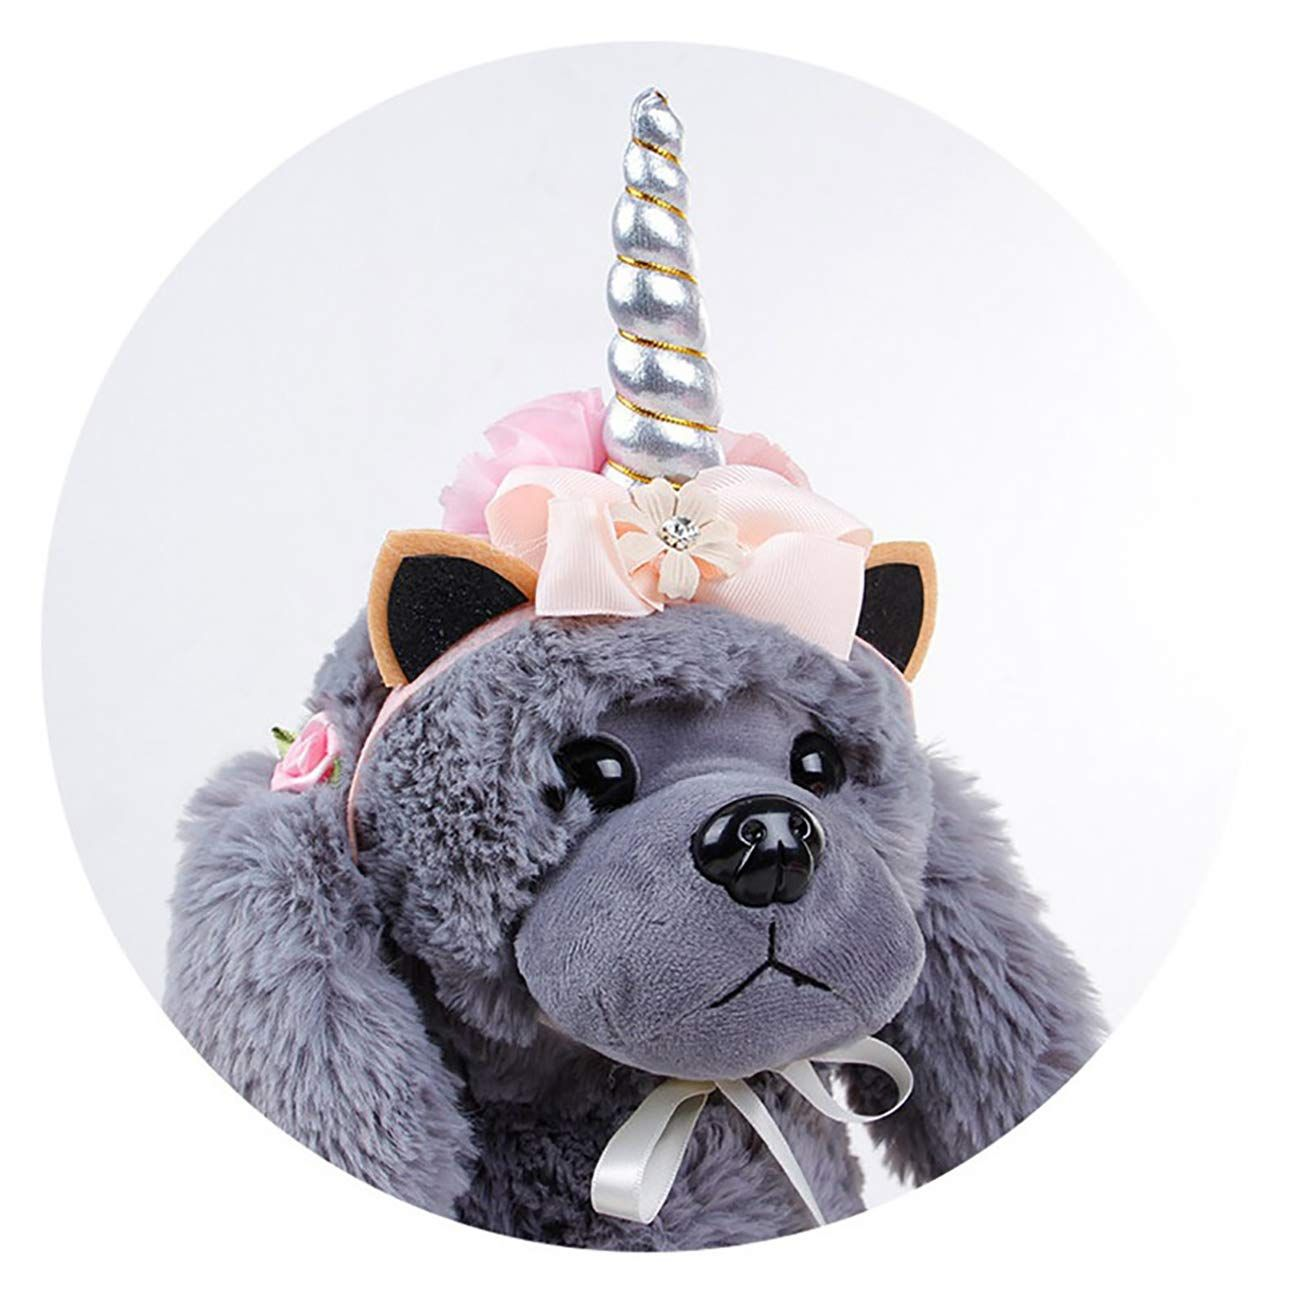 Uheng Pet Halloween Costumes Unicorn Horn Headband Dogs Cats Flower Adjustable Flexible Head Piece Hat Headpiece Cosplay Dogs Cats Christmas Festival Party Gift